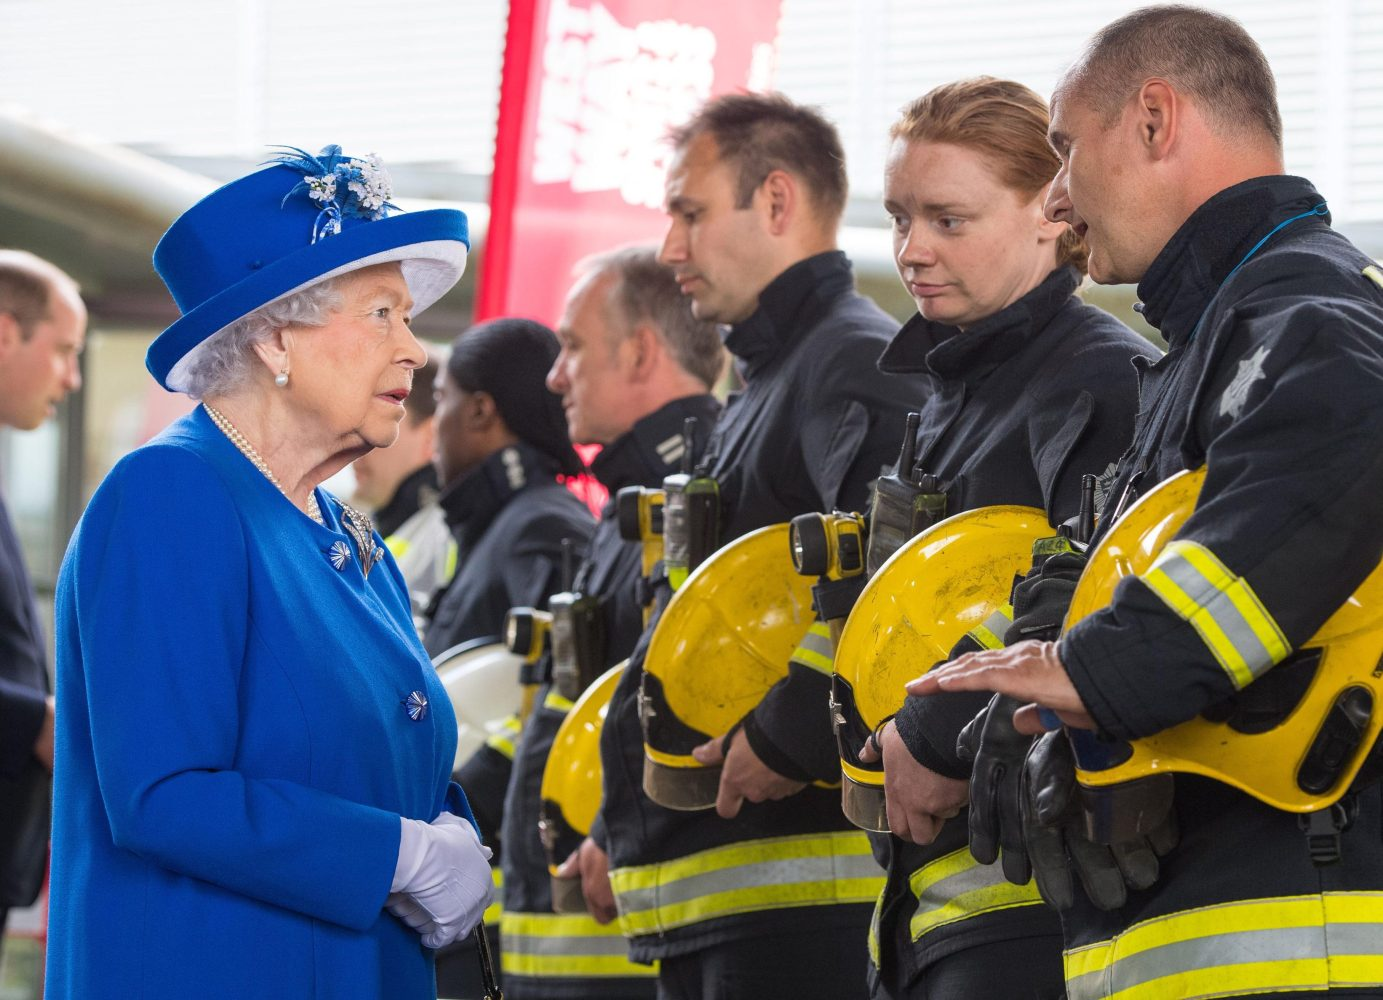 The Queen and Prince William meet firefighters during a visit to the Westway Sports Centre, London, which is providing temporary shelter for those who have been made homeless by the fire at Grenfell Tower. Picture by  i-Images / Pool)